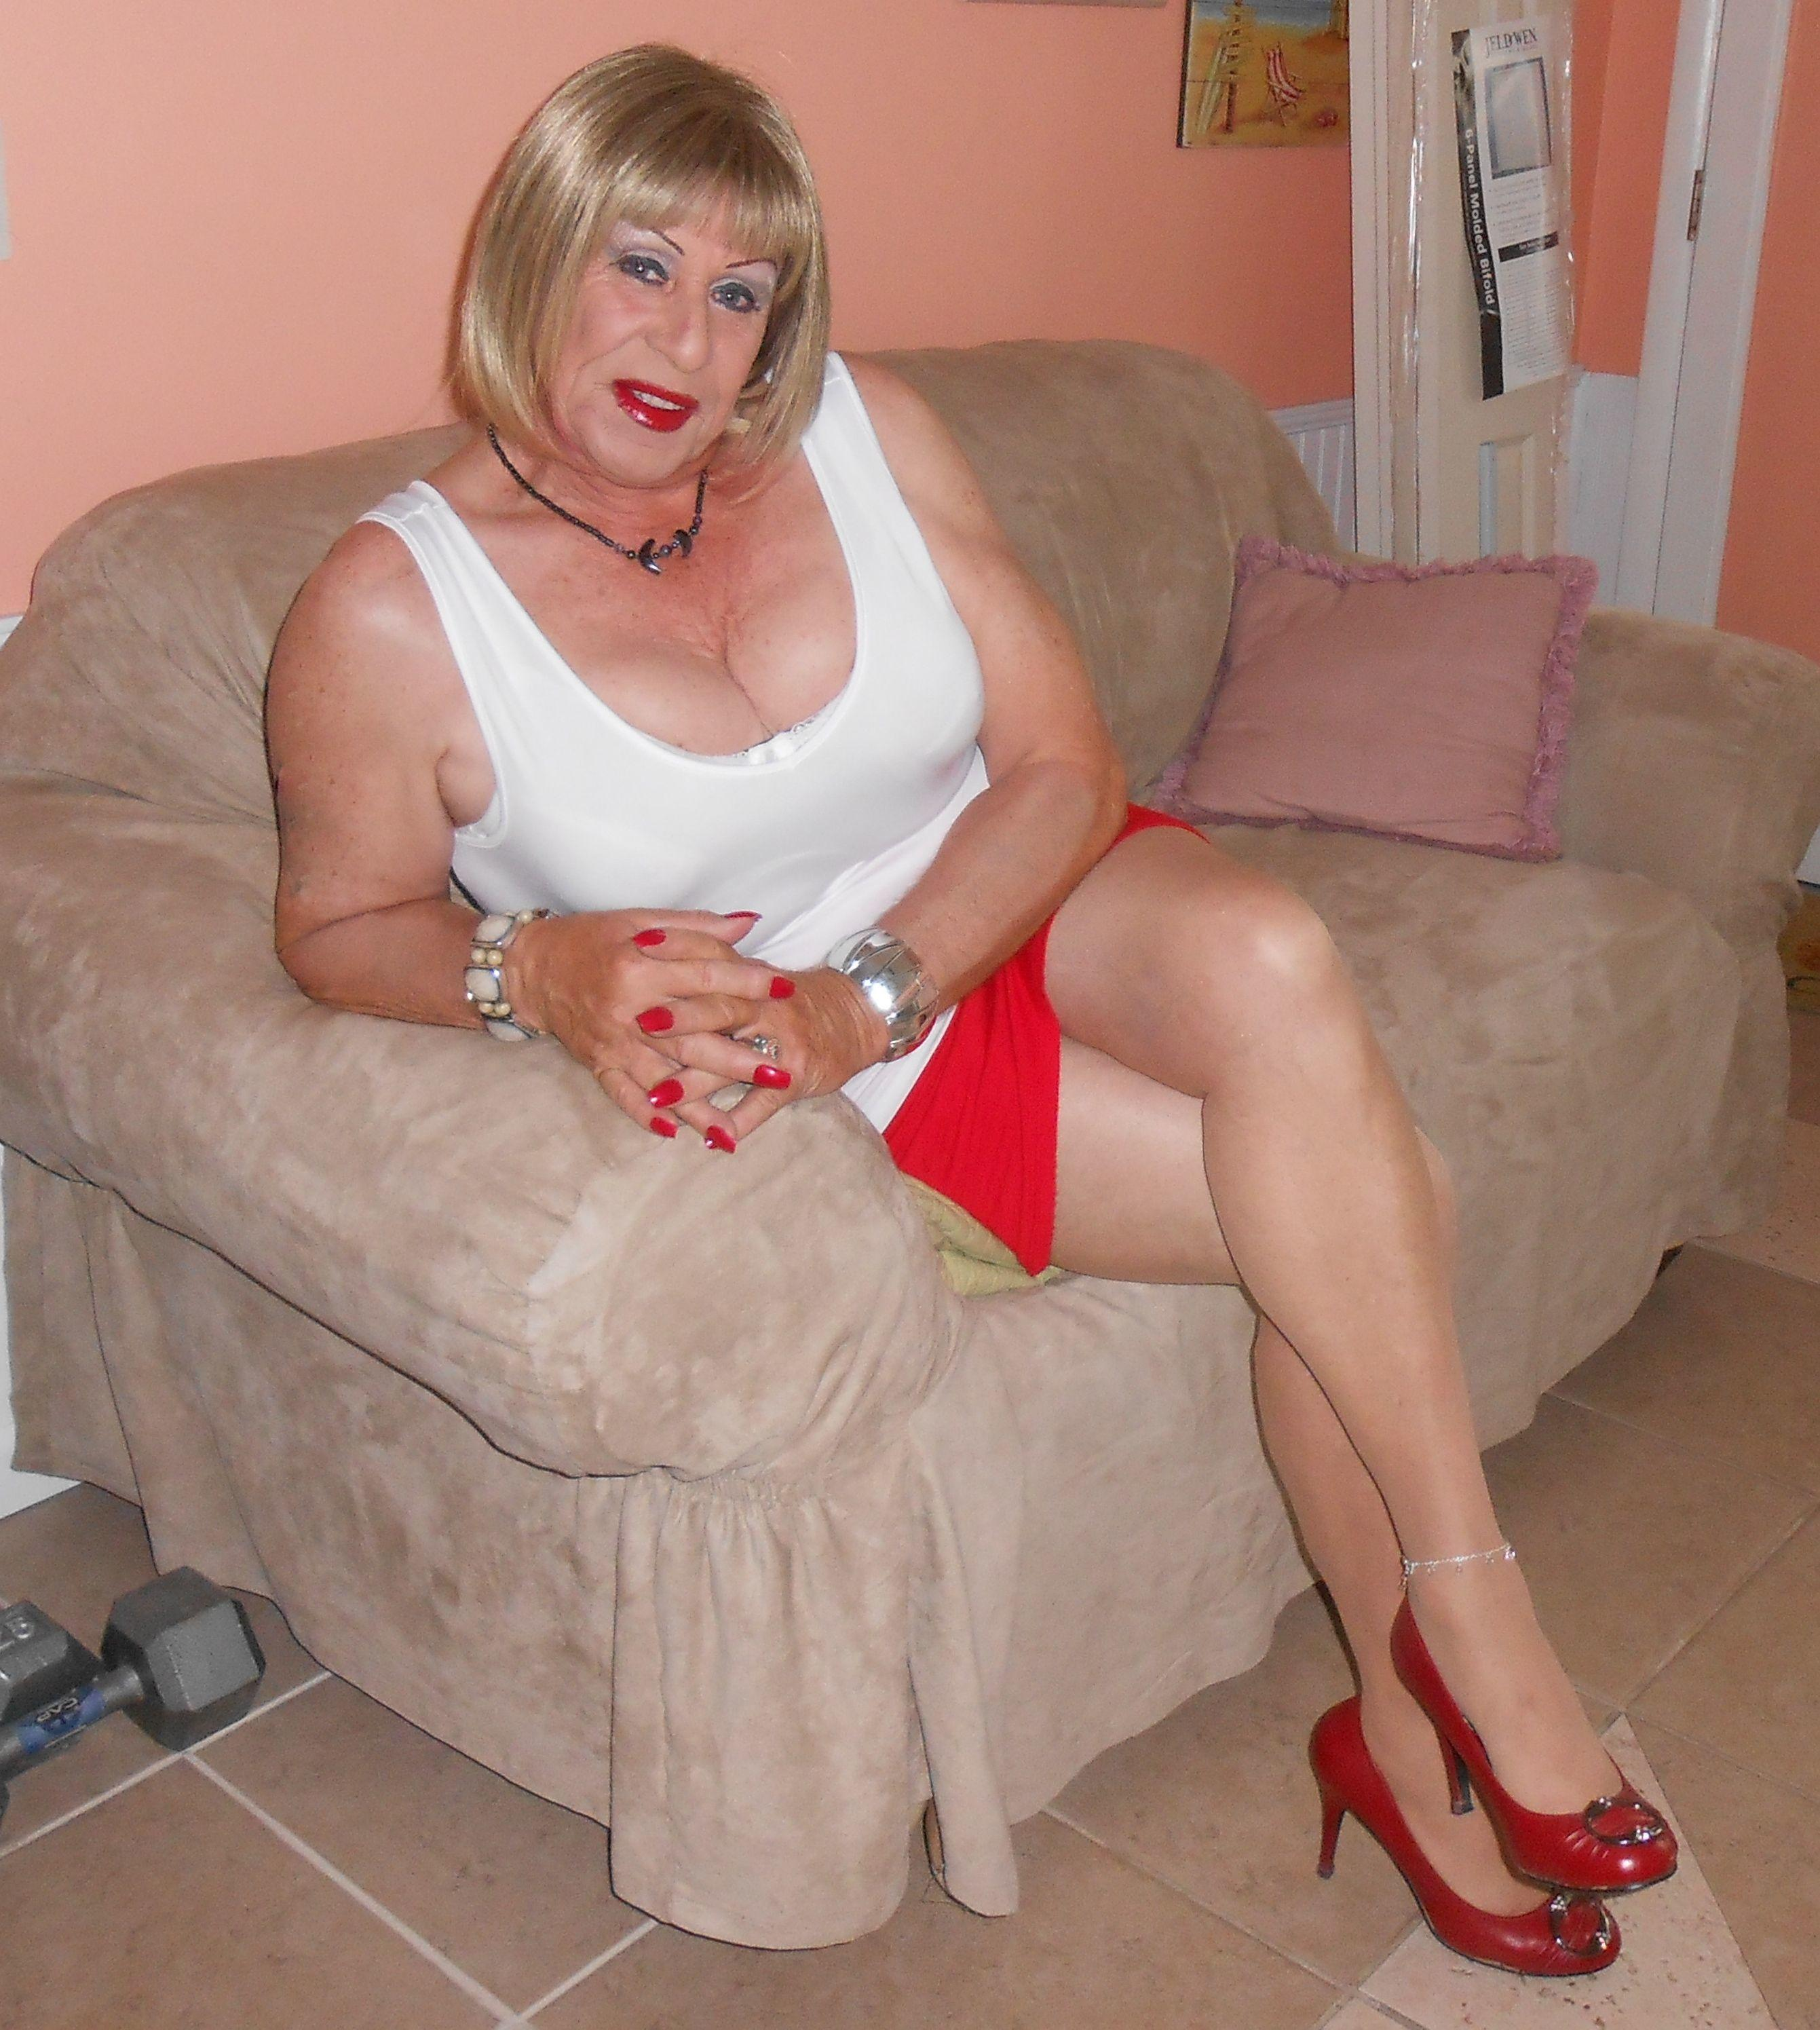 Crossdresser web cams